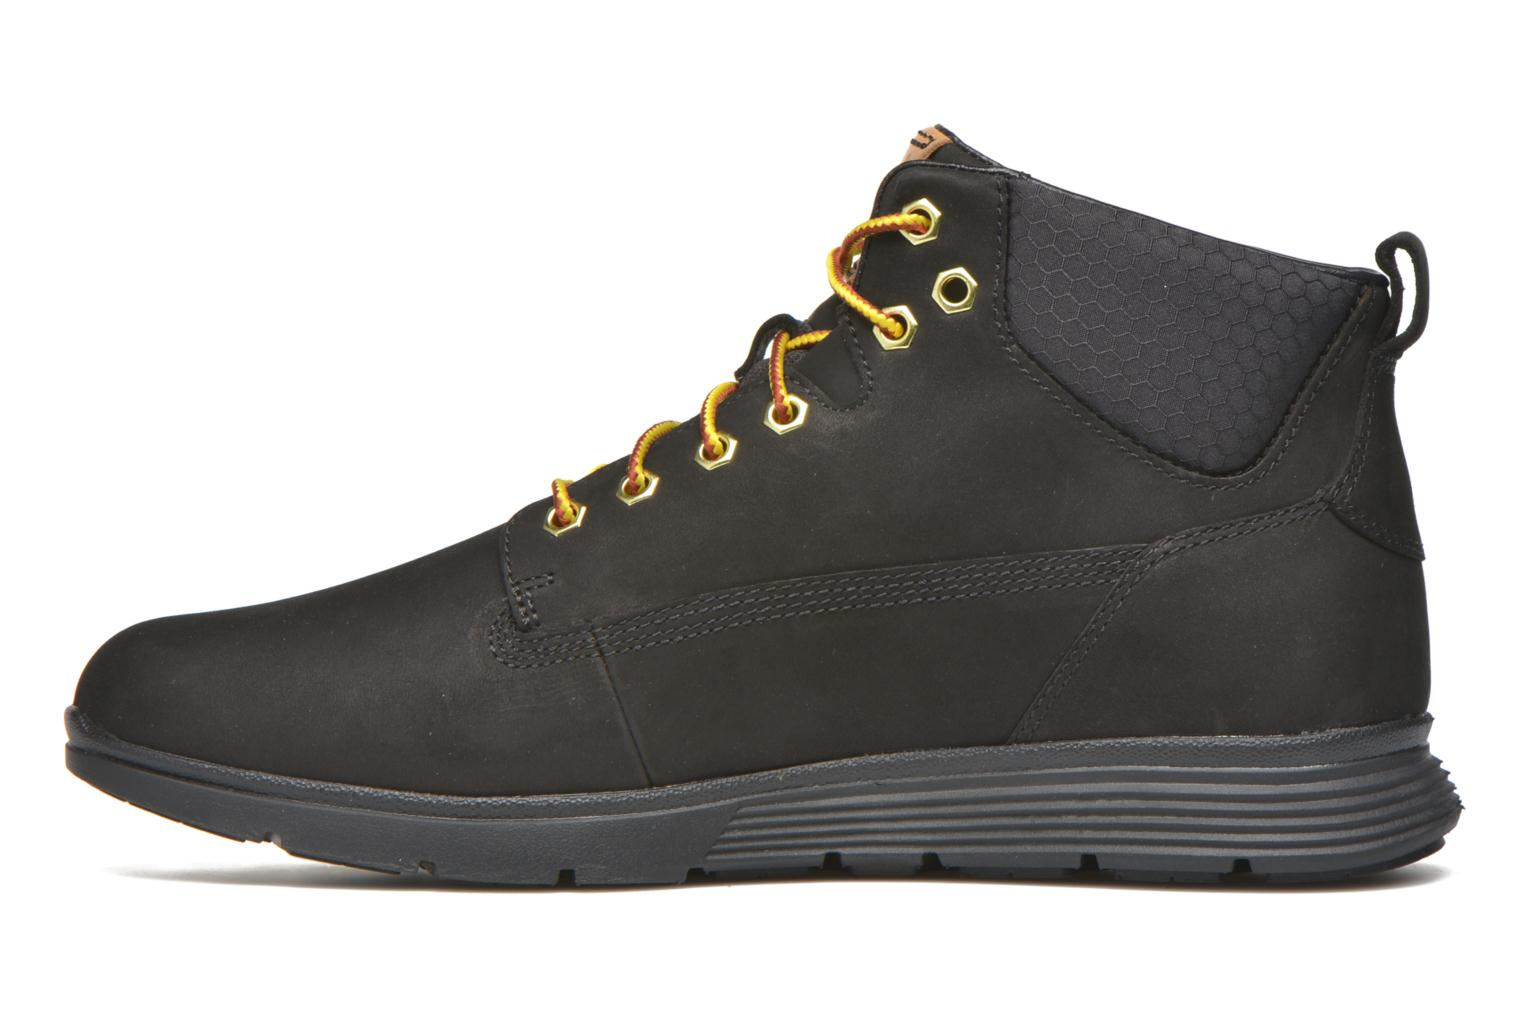 Bottines et boots Timberland Killington Chukka Noir vue face